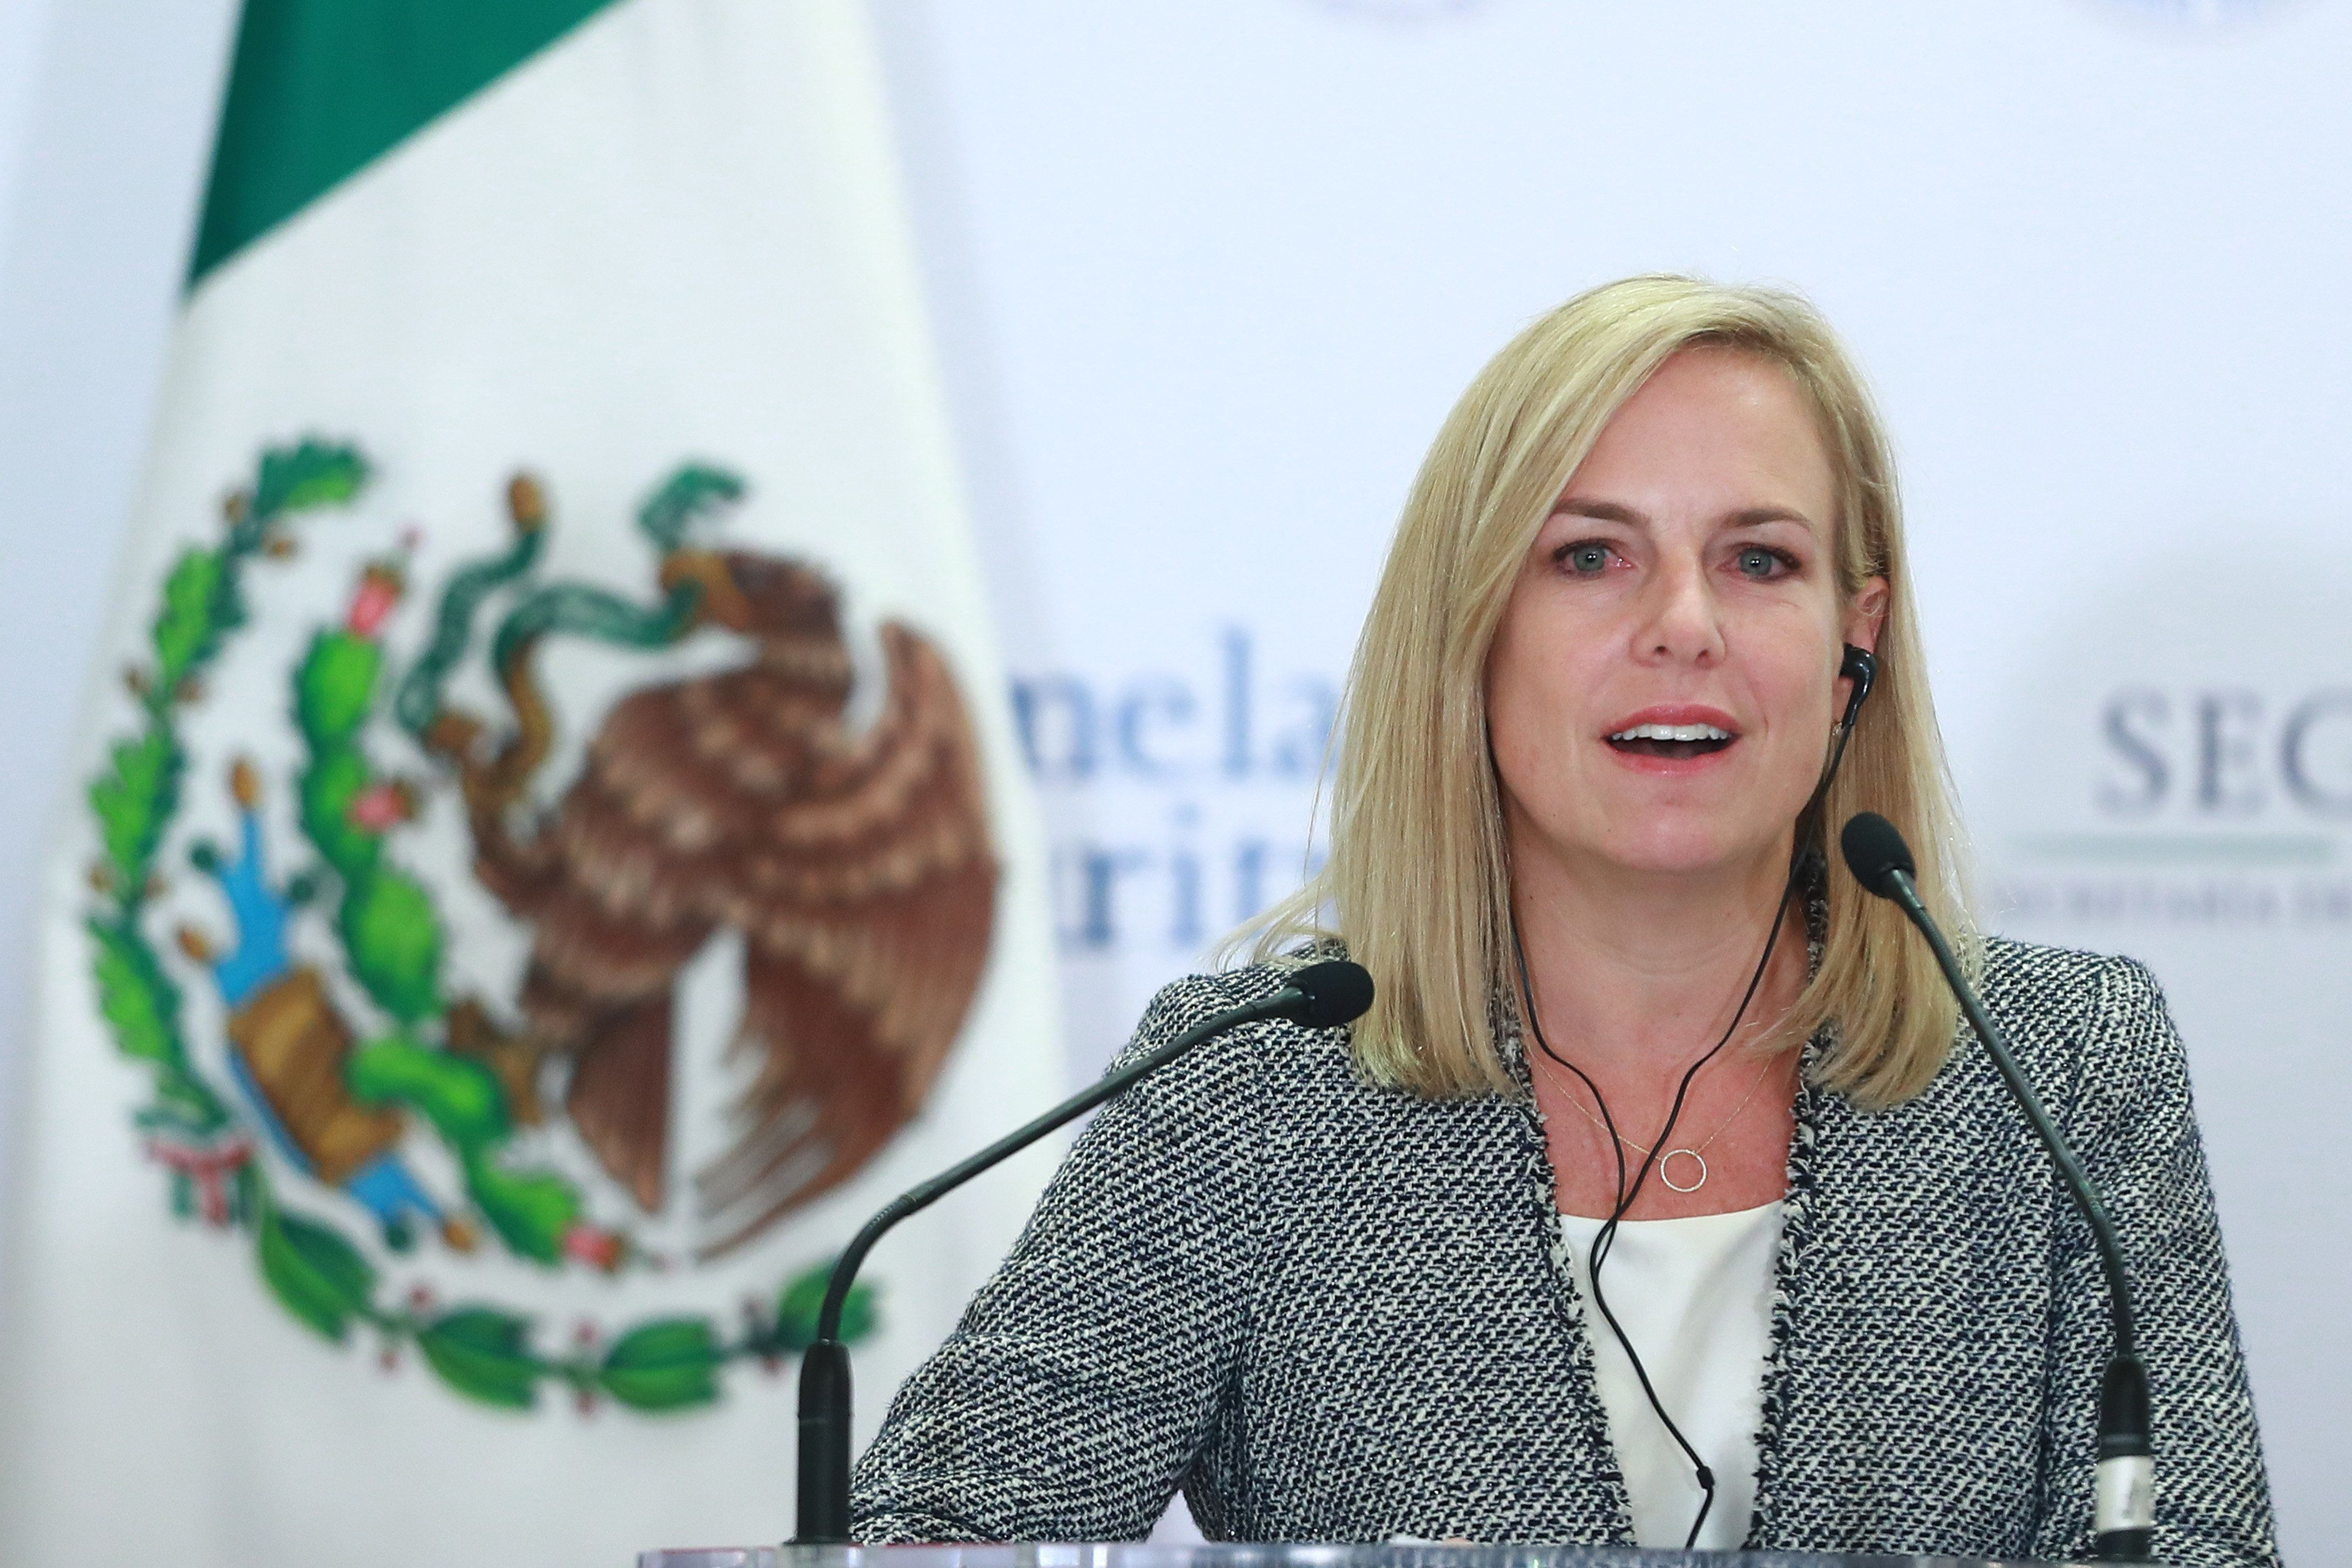 MEXICO CITY, MEXICO - MARCH 26: Homeland Security Secretary Kristjen Nielsen speaks during a press conference at the Mexican Government Office on March 26, 2018 in Mexico City, Mexico. (Photo by Hector Vivas/Getty Images)